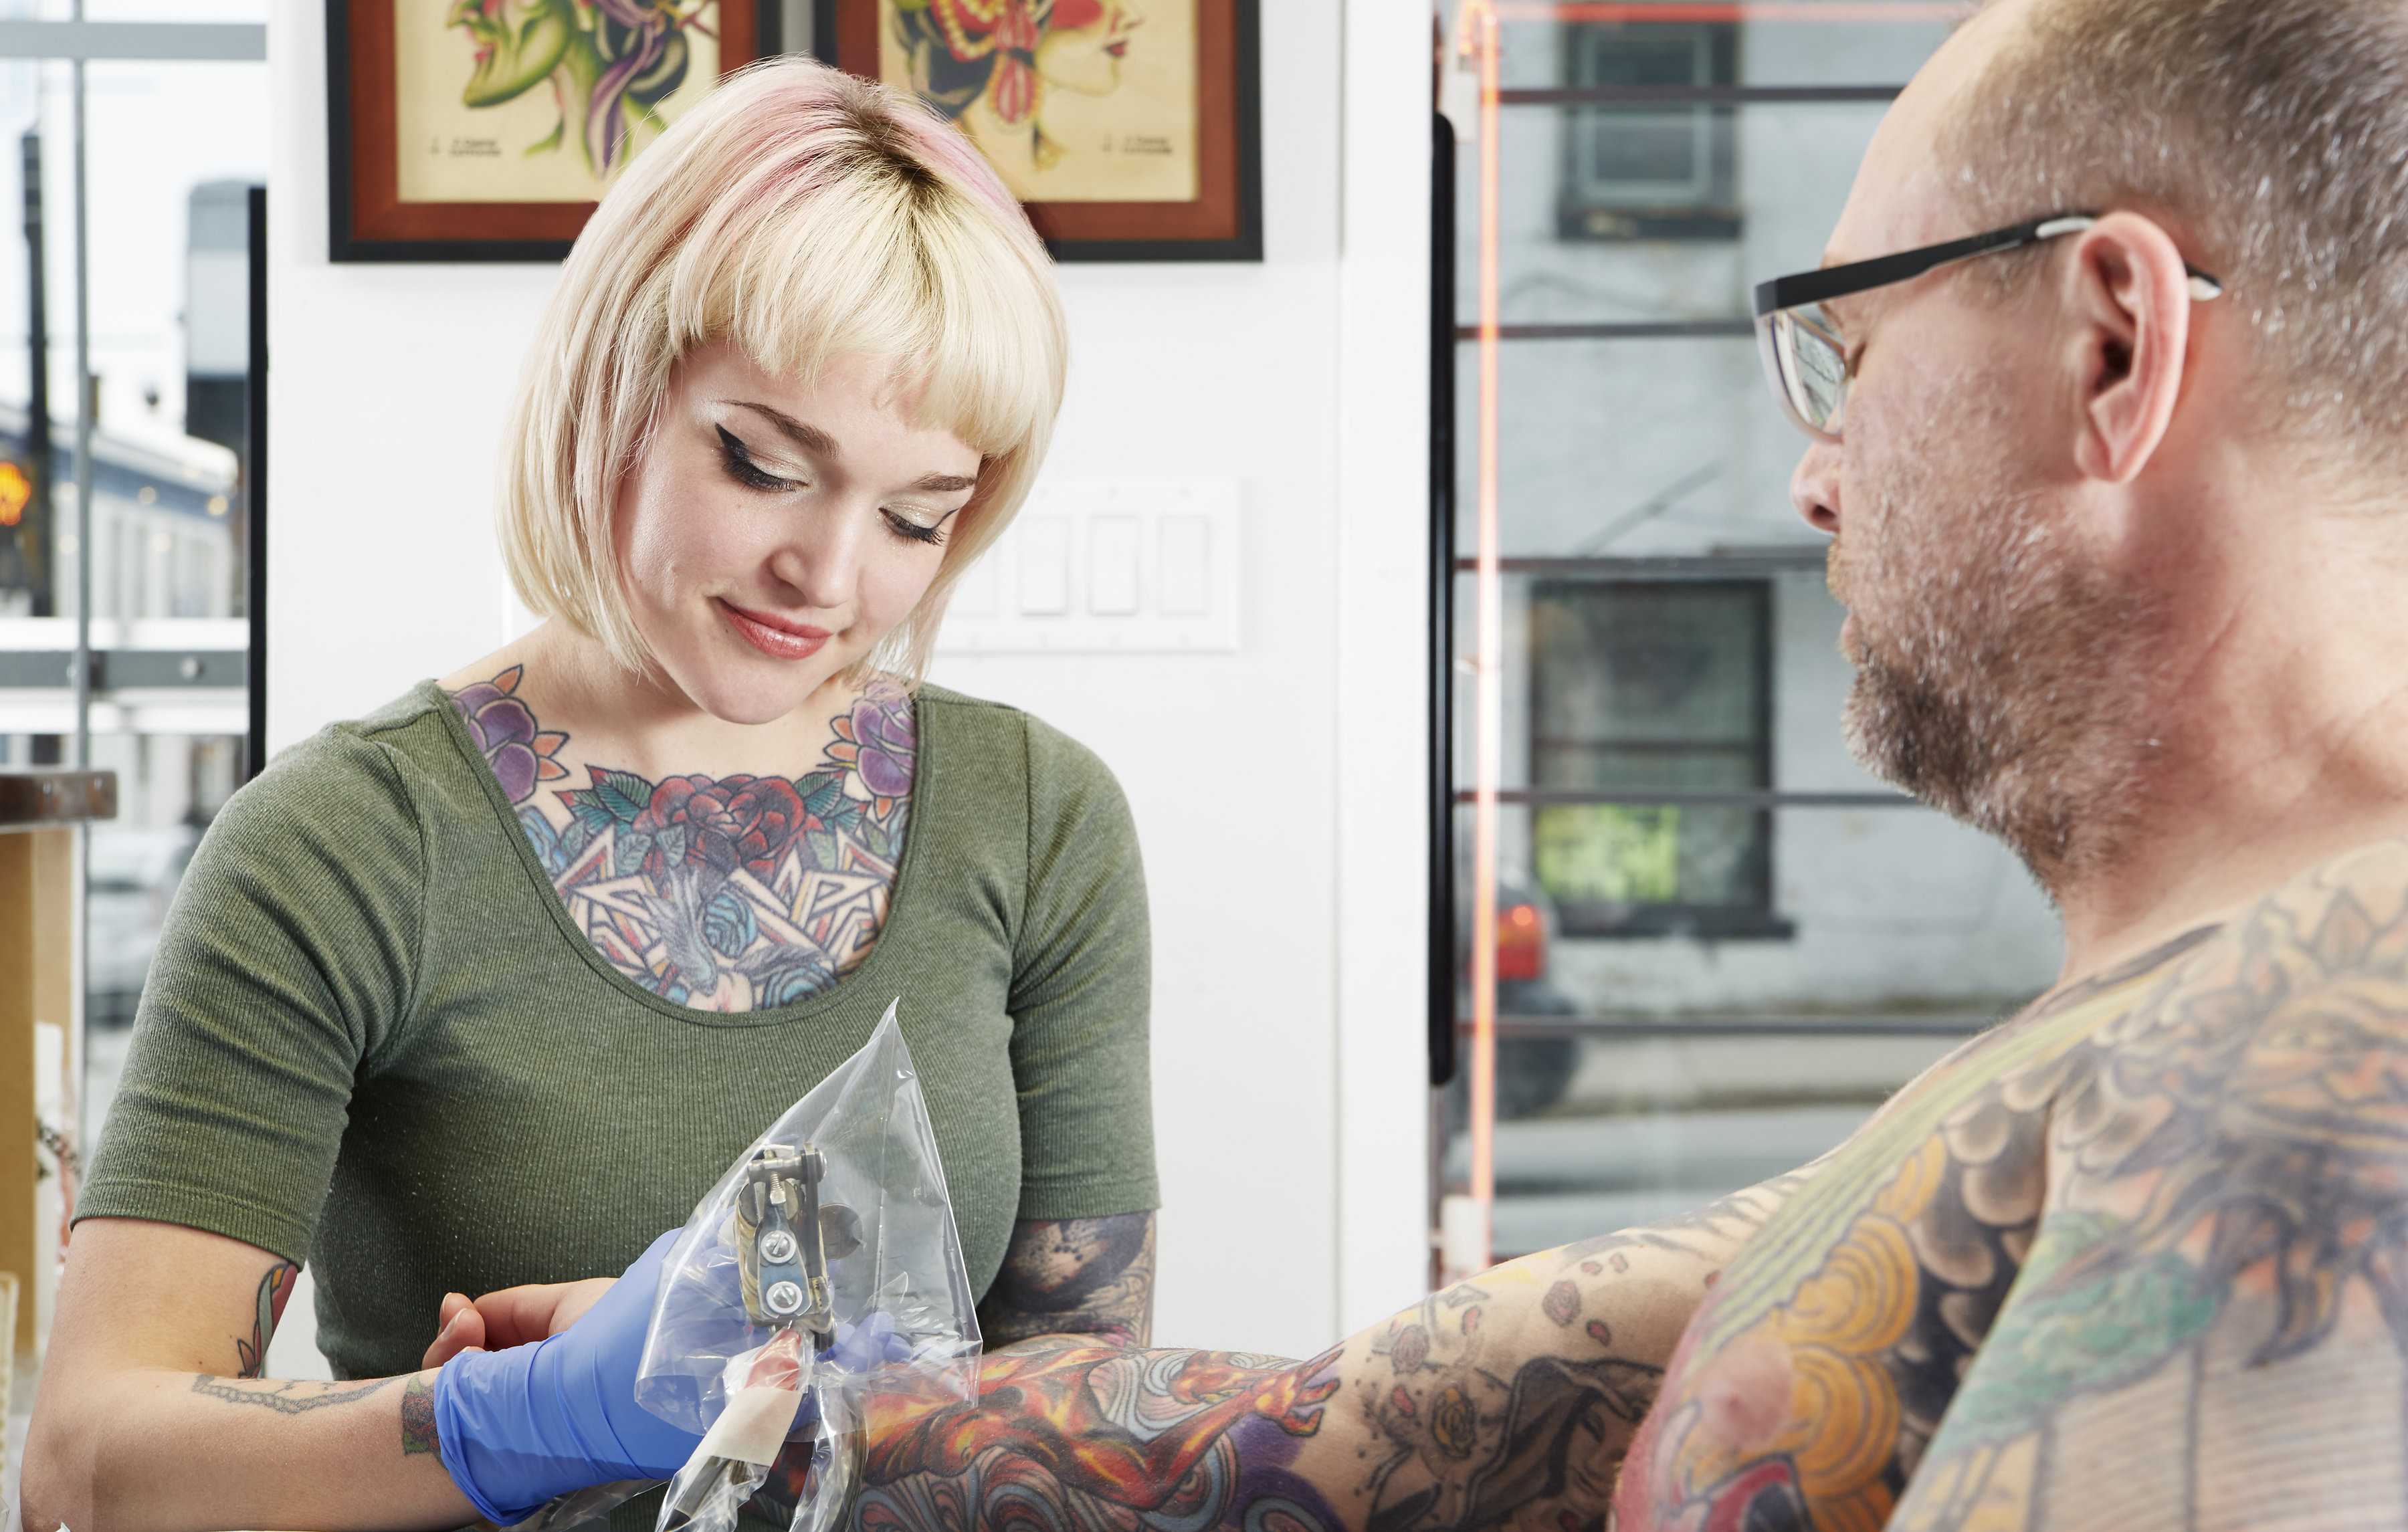 Jenny Grant tattooing at True North Tattoo